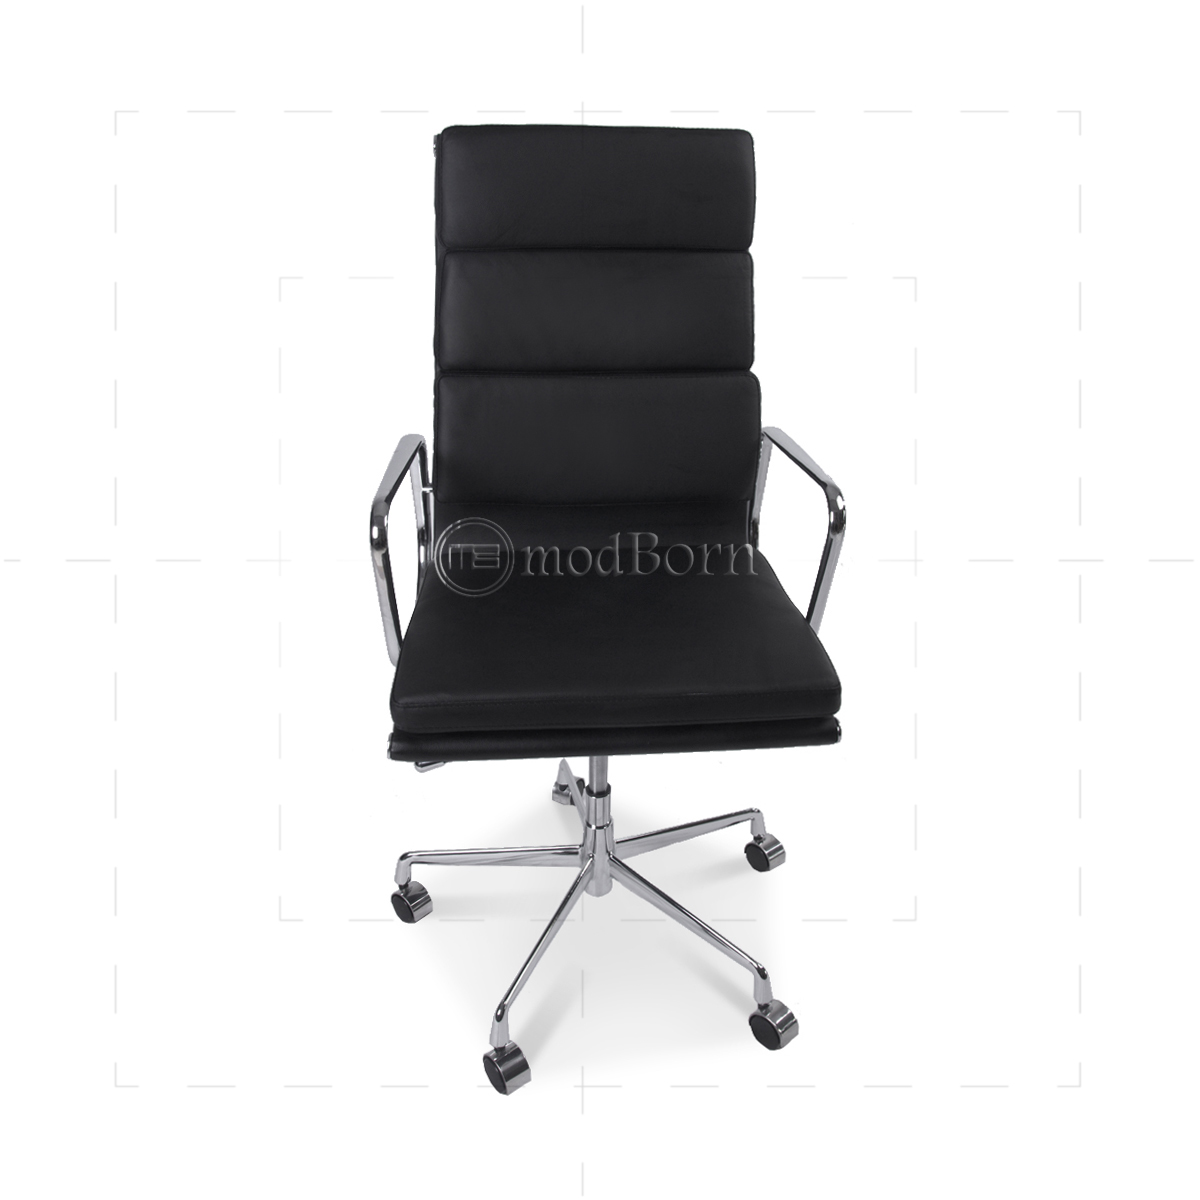 ea219 eames style office chair high back soft pad black leather replica. Black Bedroom Furniture Sets. Home Design Ideas